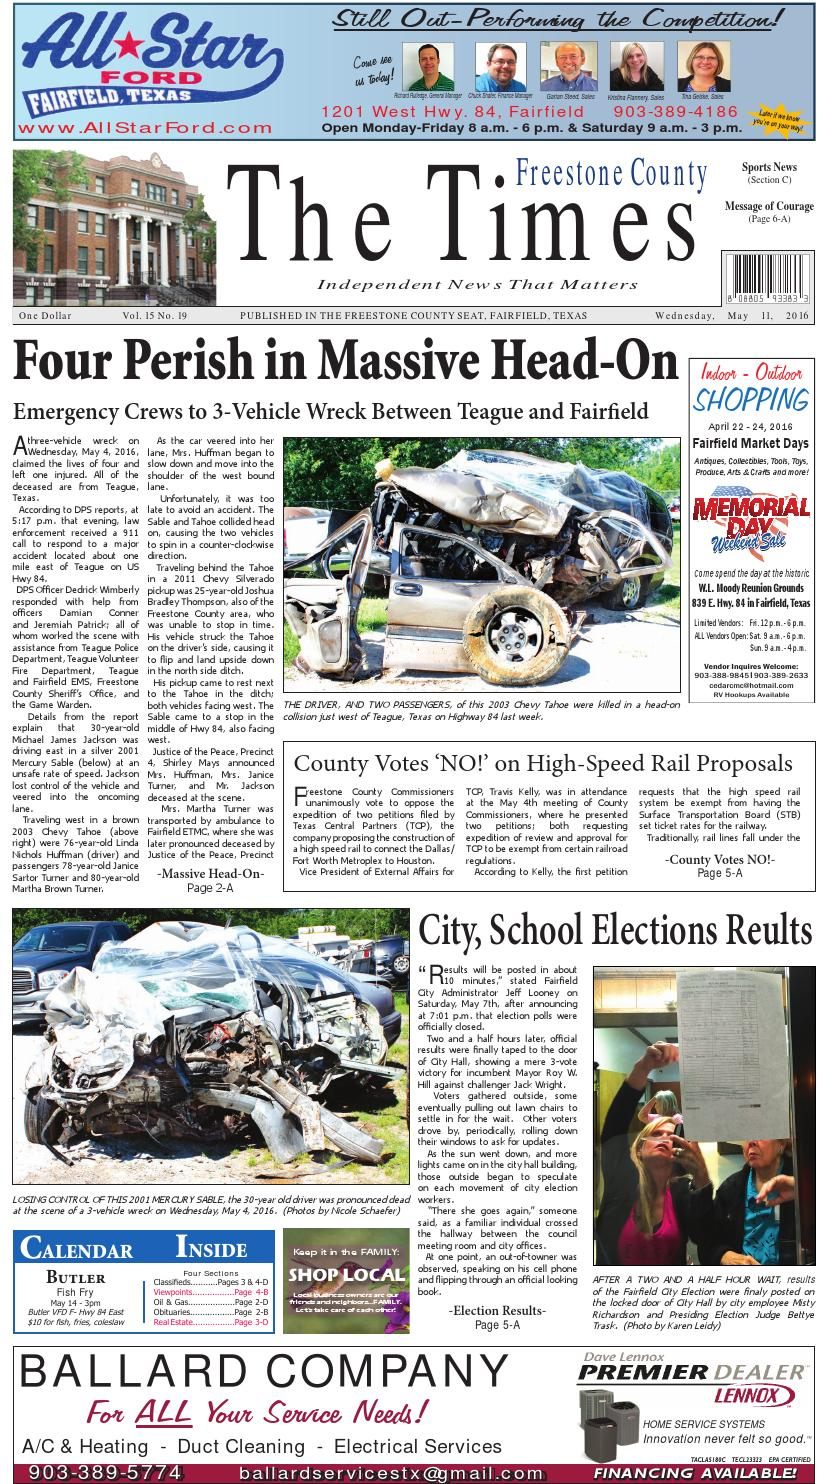 Freestonecountytimes051116 by Karen Leidy - issuu